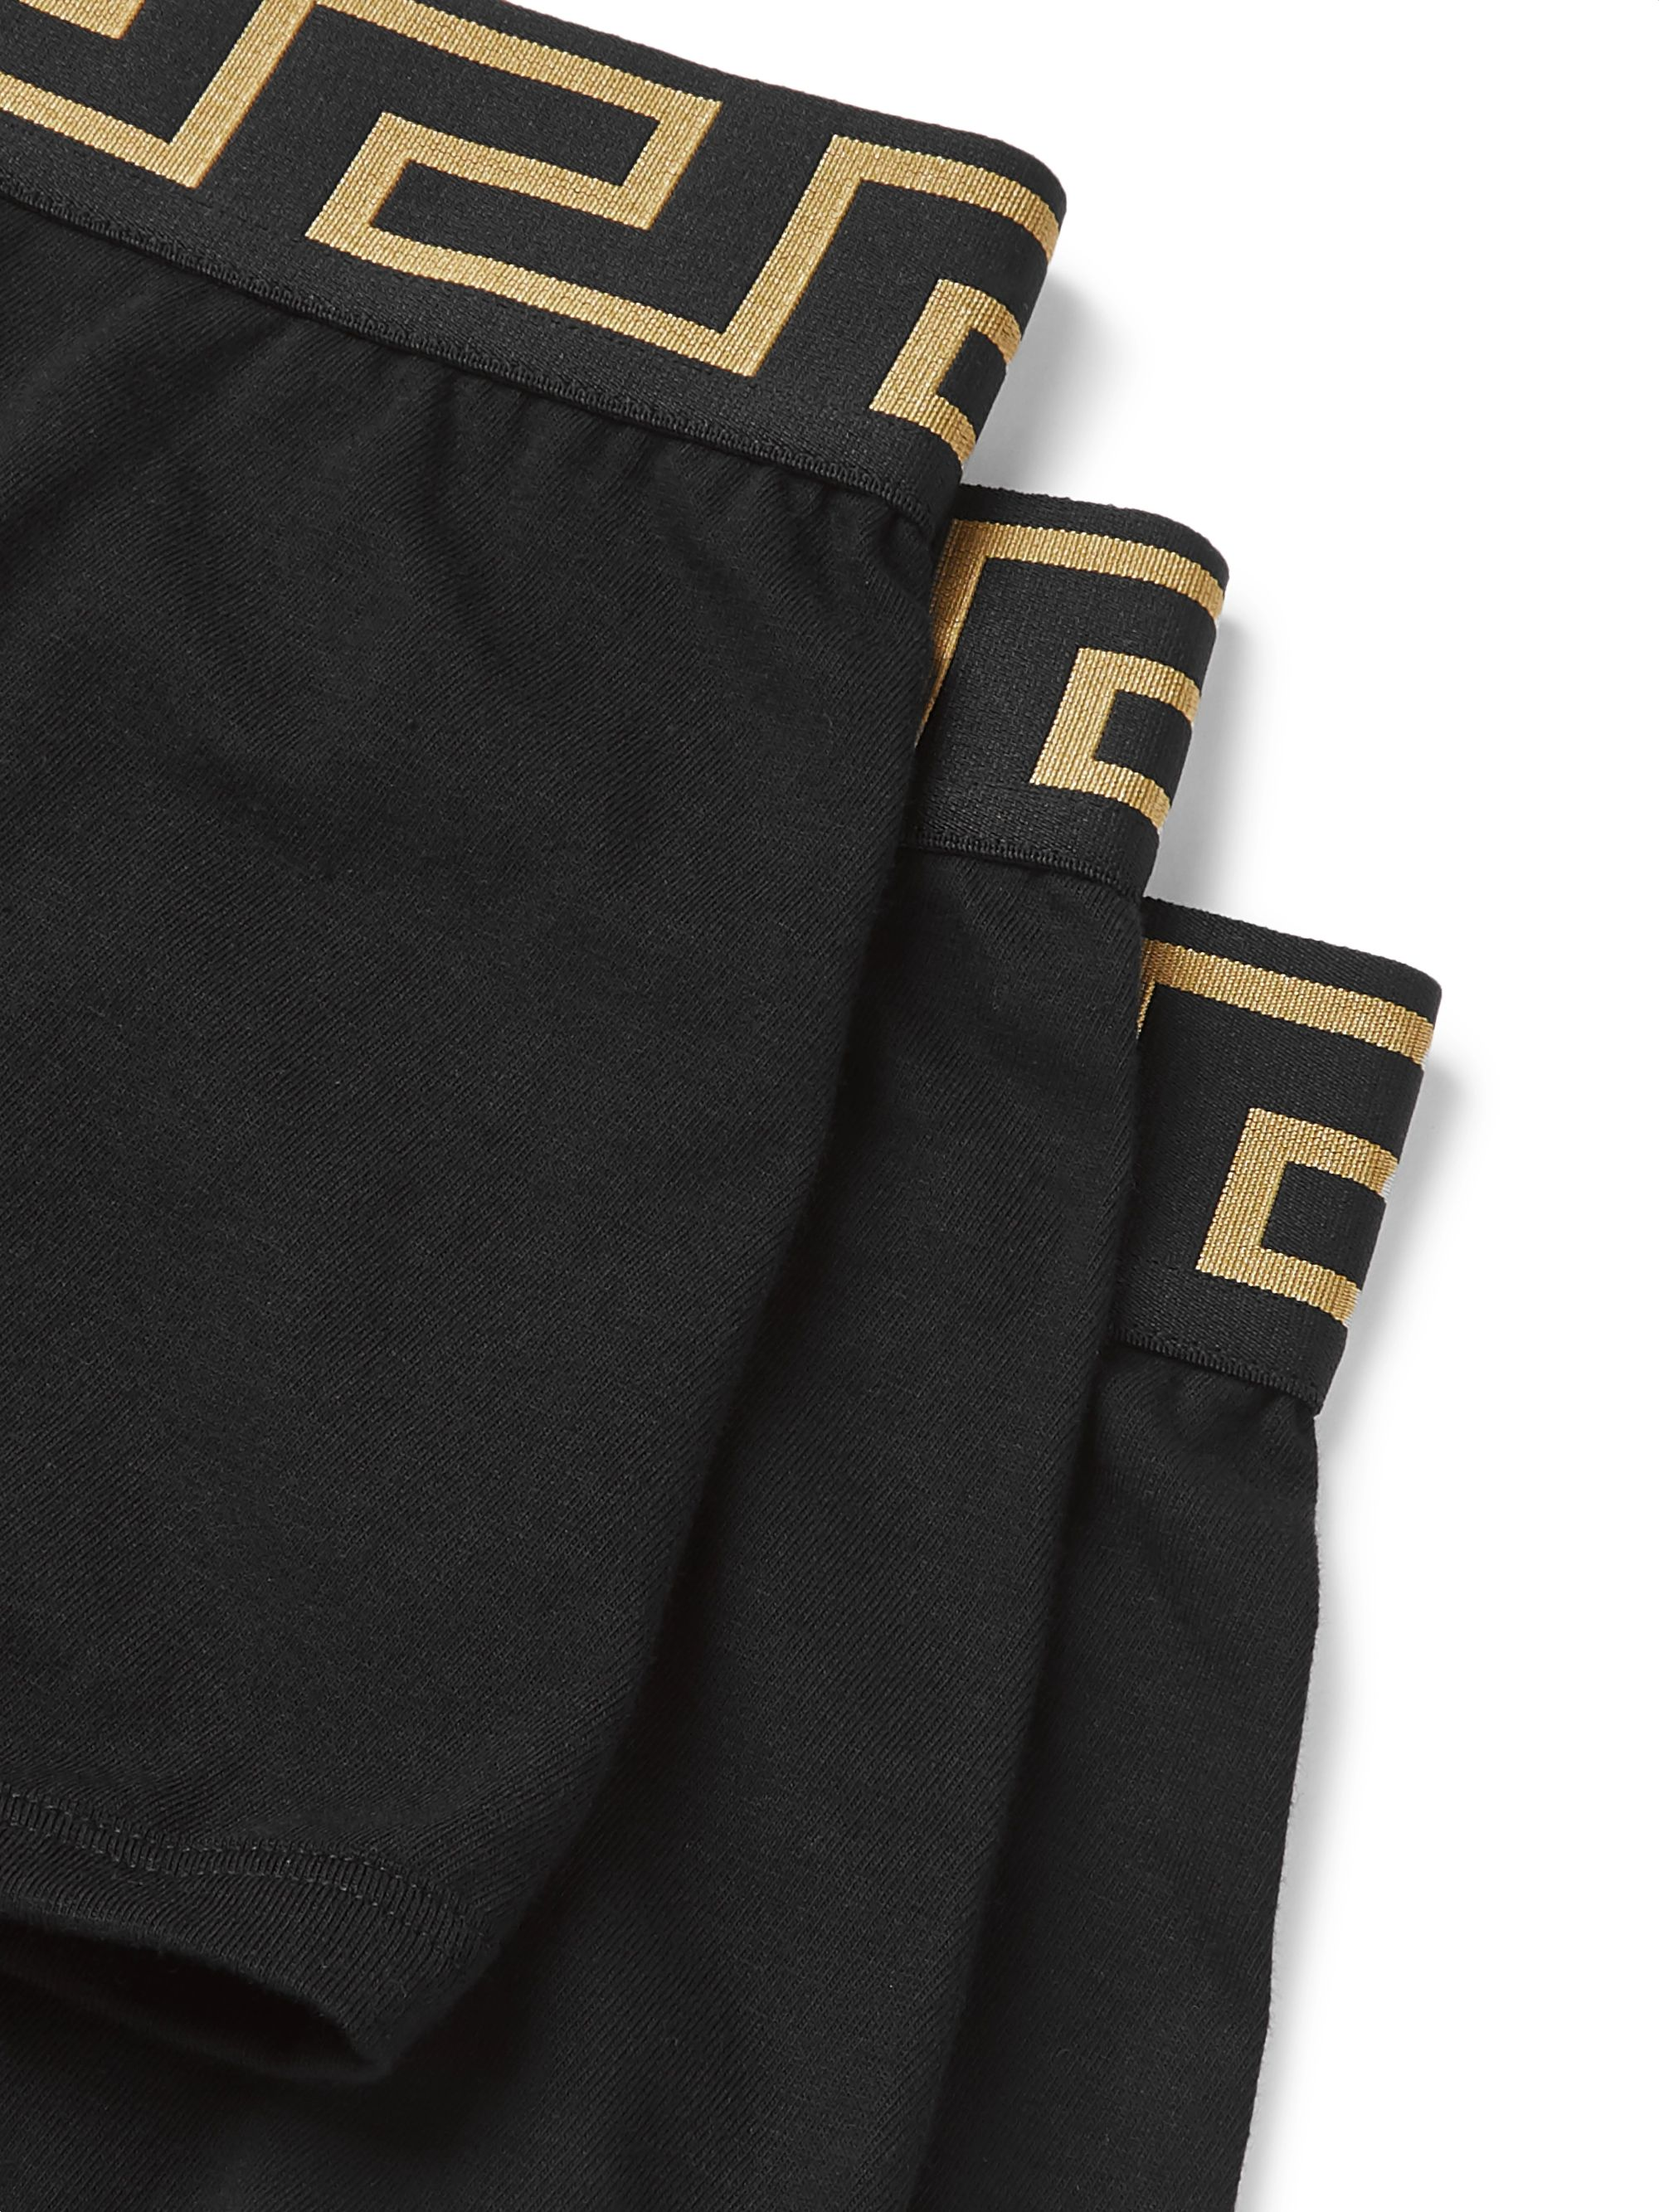 Versace Three-Pack Logo-Detailed Stretch-Cotton Boxer Briefs